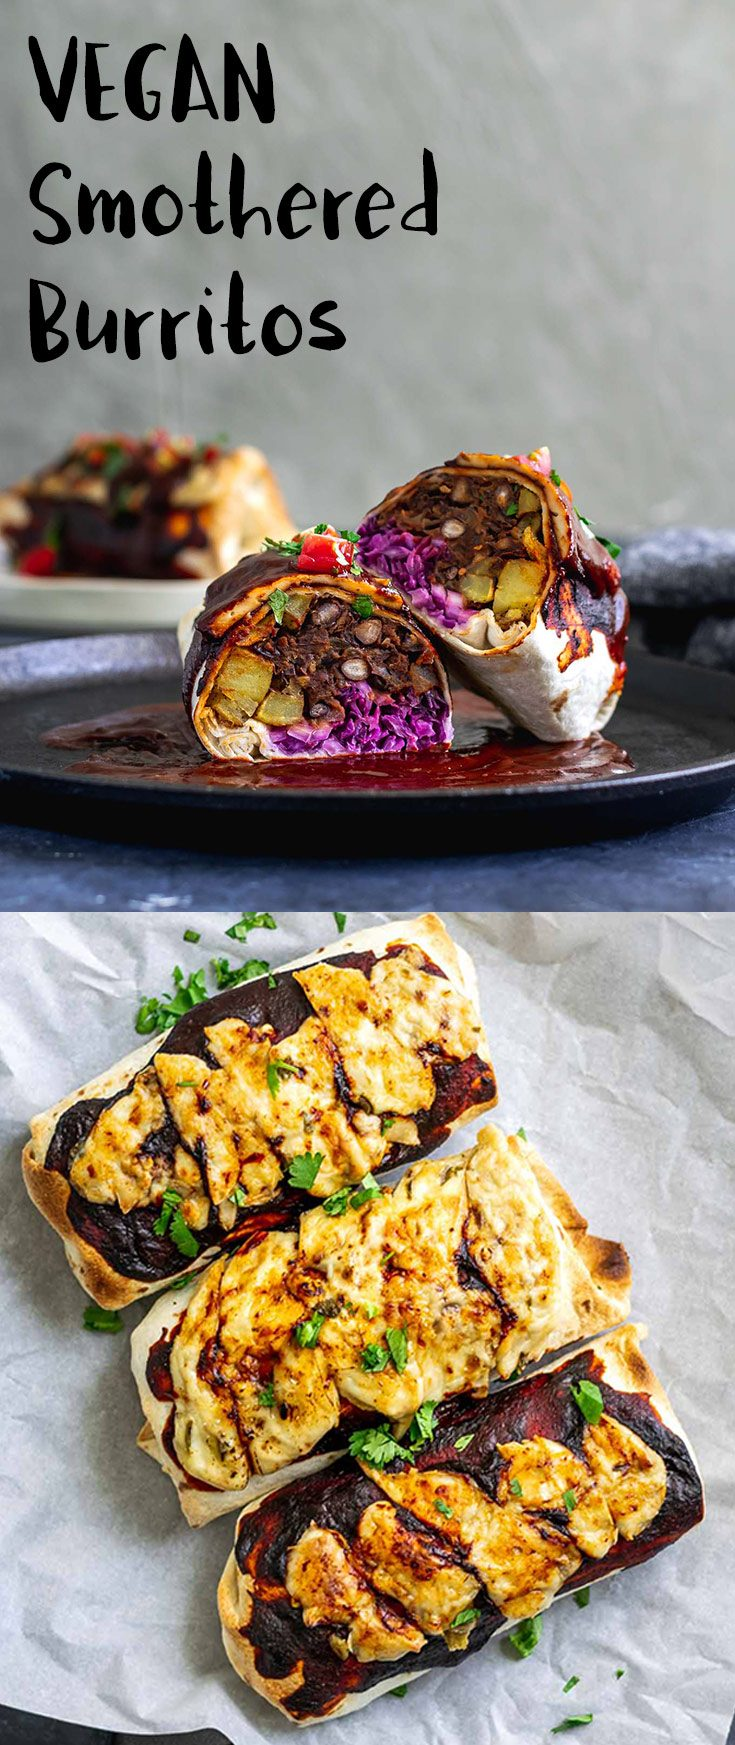 Burritos are filled with homestyle potatoes, cabbage slaw, and delicious easy refried black beans, then smothered with Mexican red chile sauce and vegan cheese and baked until hot. | thecuriouschickpea.com #vegan #veganmexican #burrito #veganburrito